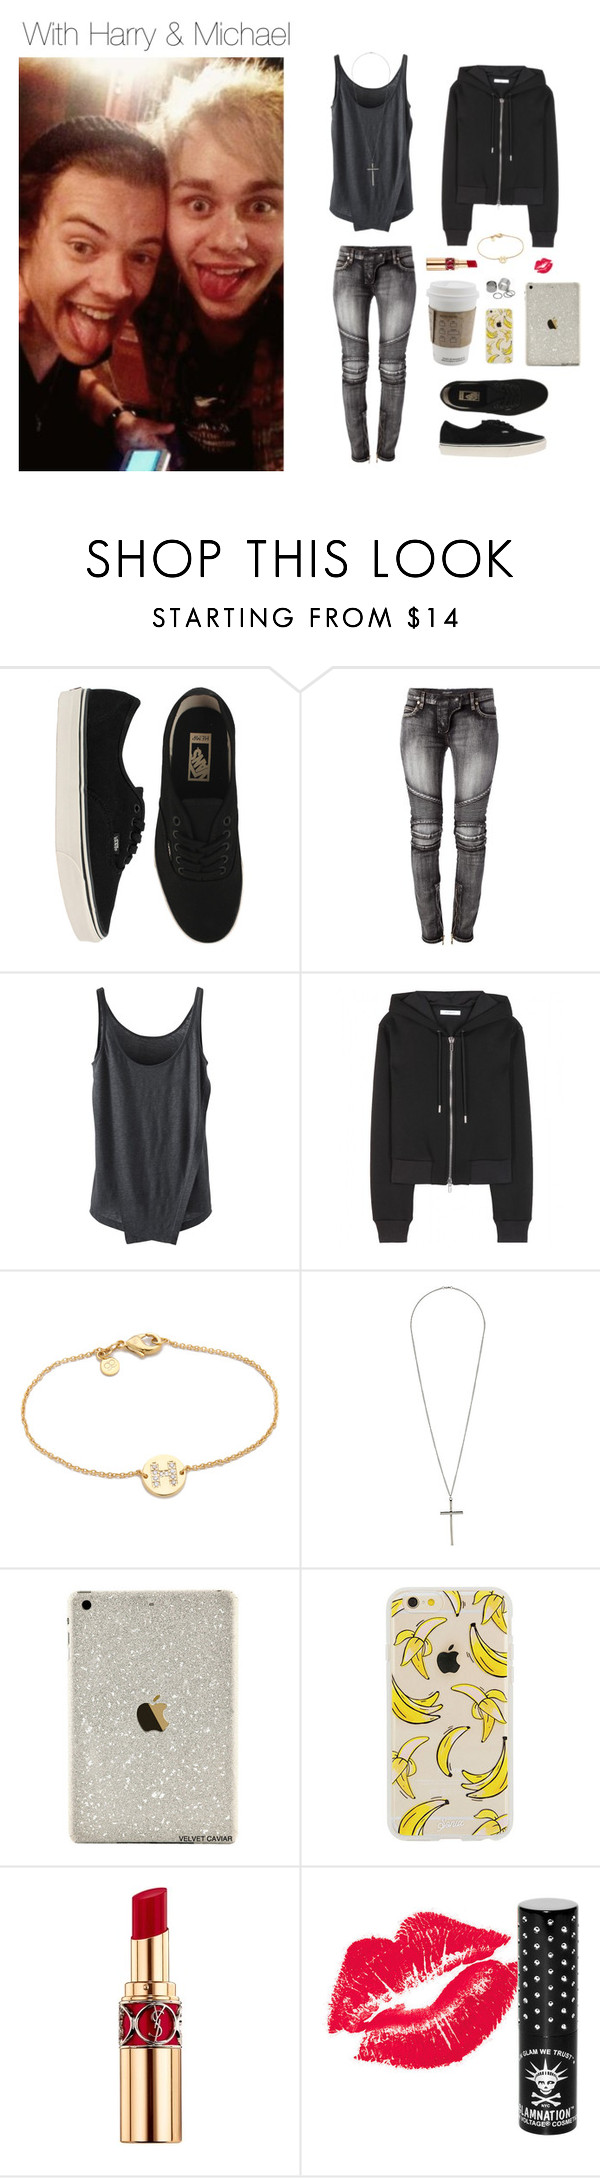 """""""With Harry and Michael"""" by kath-wolf ❤ liked on Polyvore featuring Vans, Balmain, Givenchy, Gorjana, Topshop, Yves Saint Laurent, Manic Panic and Pieces"""